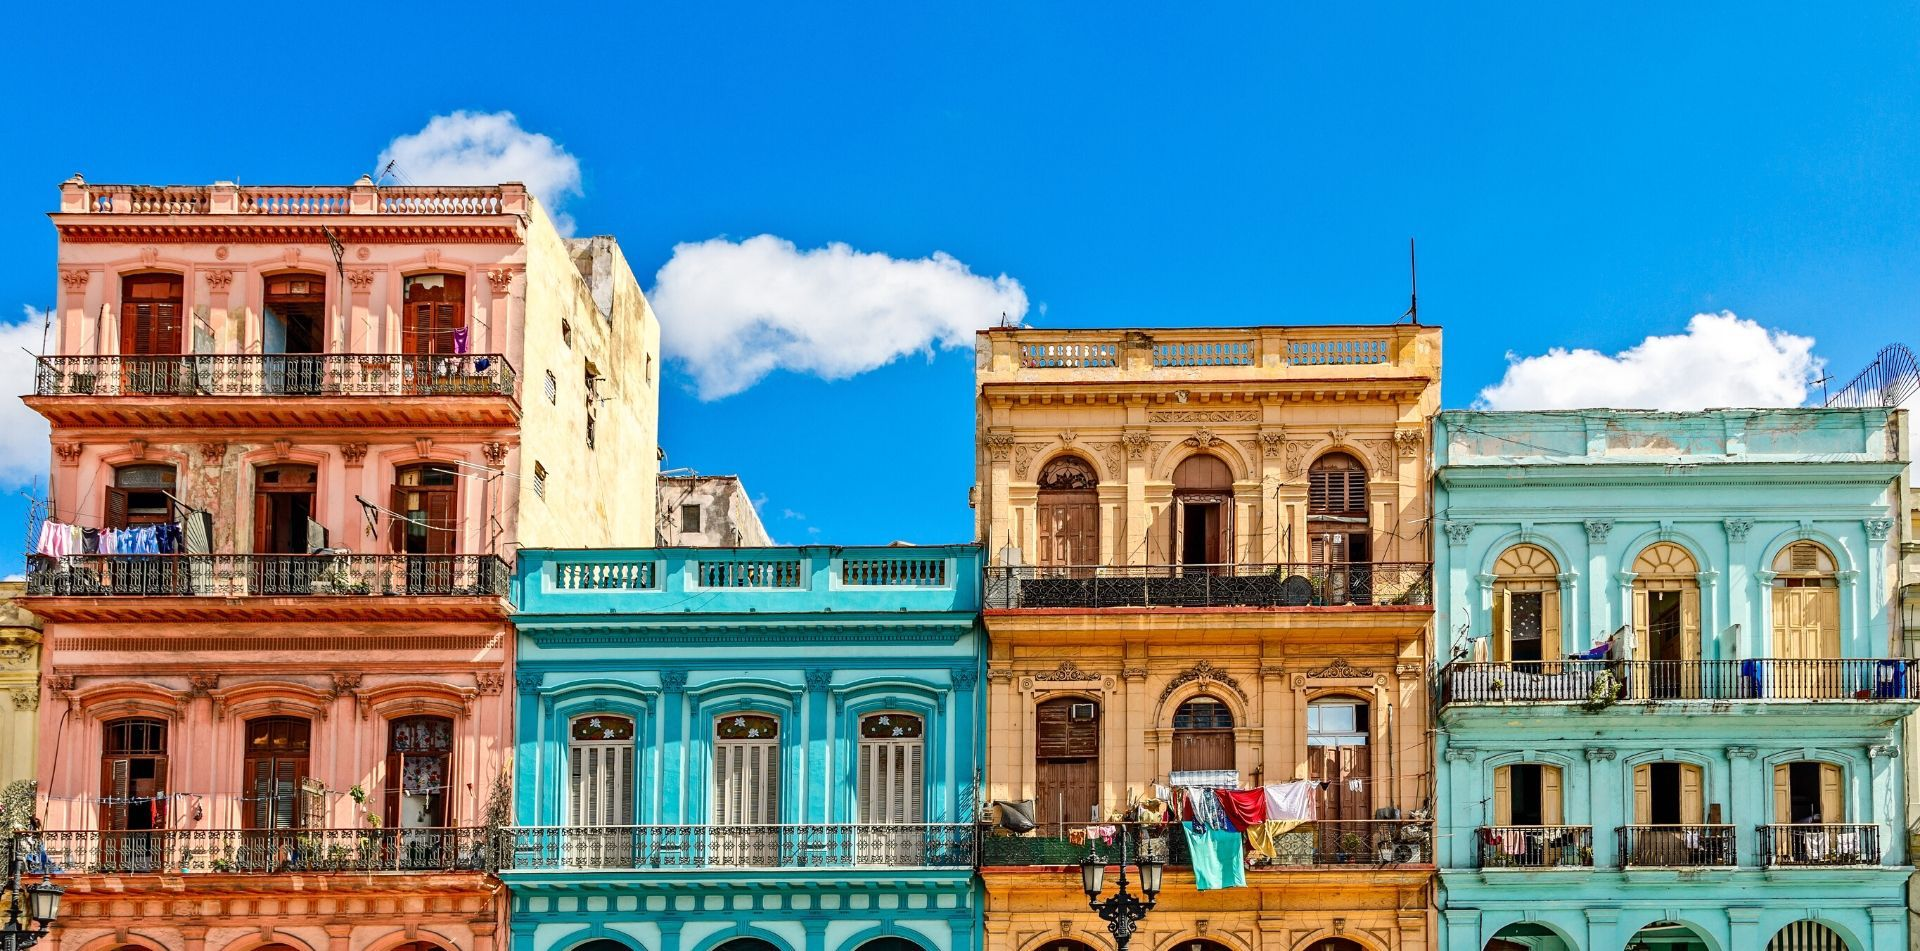 North America Caribbean Cuba Havana old local street beautiful vibrant pastel color buildings - luxury vacation destinations